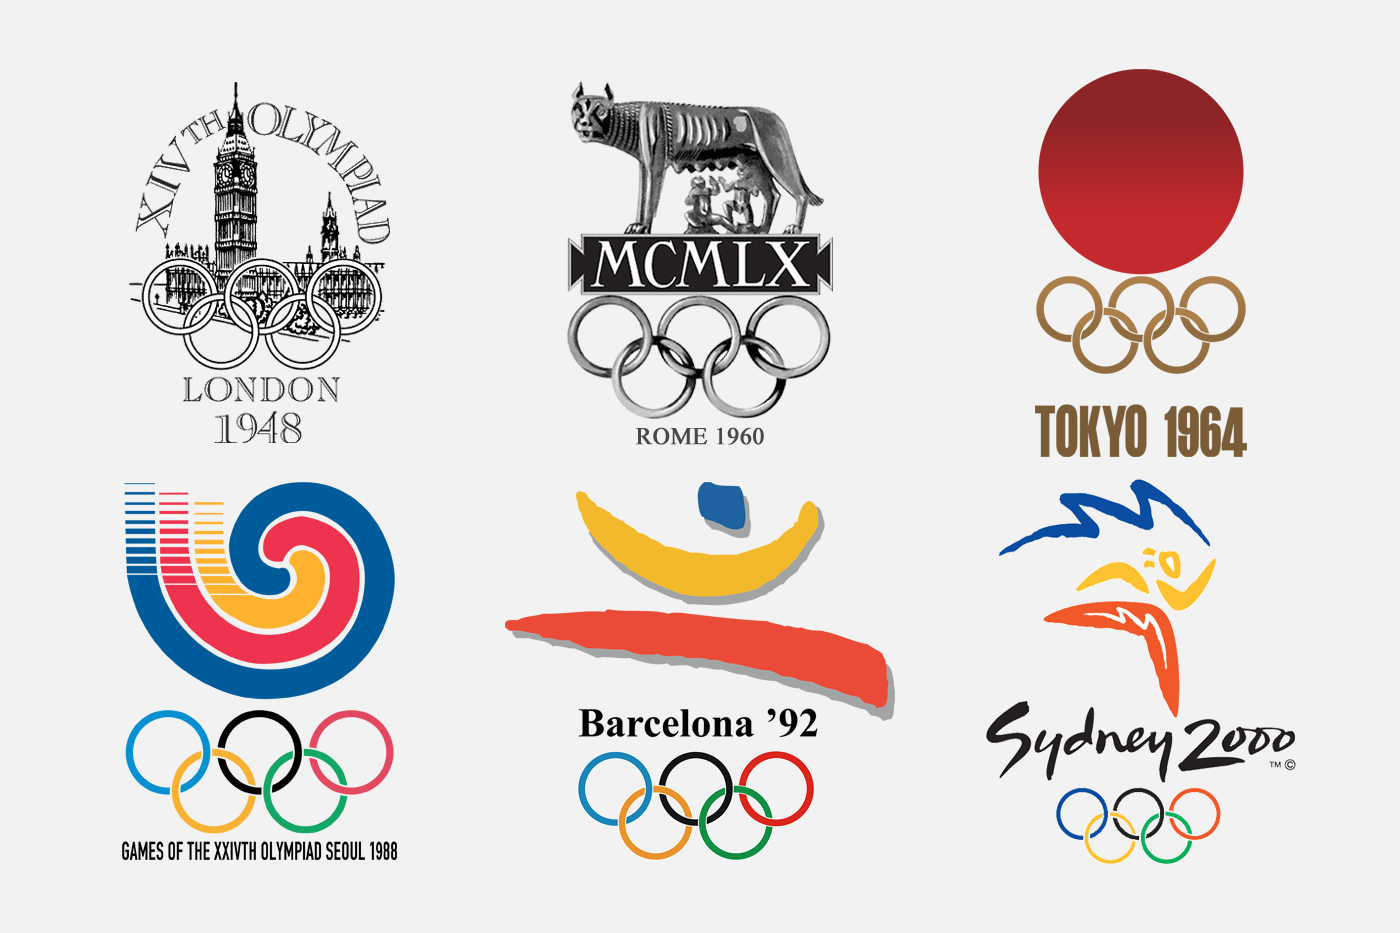 Rebrand review rio olympics 2016 eley designs the olympics is the biggest event on the planet and the logo is seen worldwide which opens up any designs to much praise andor criticism biocorpaavc Images